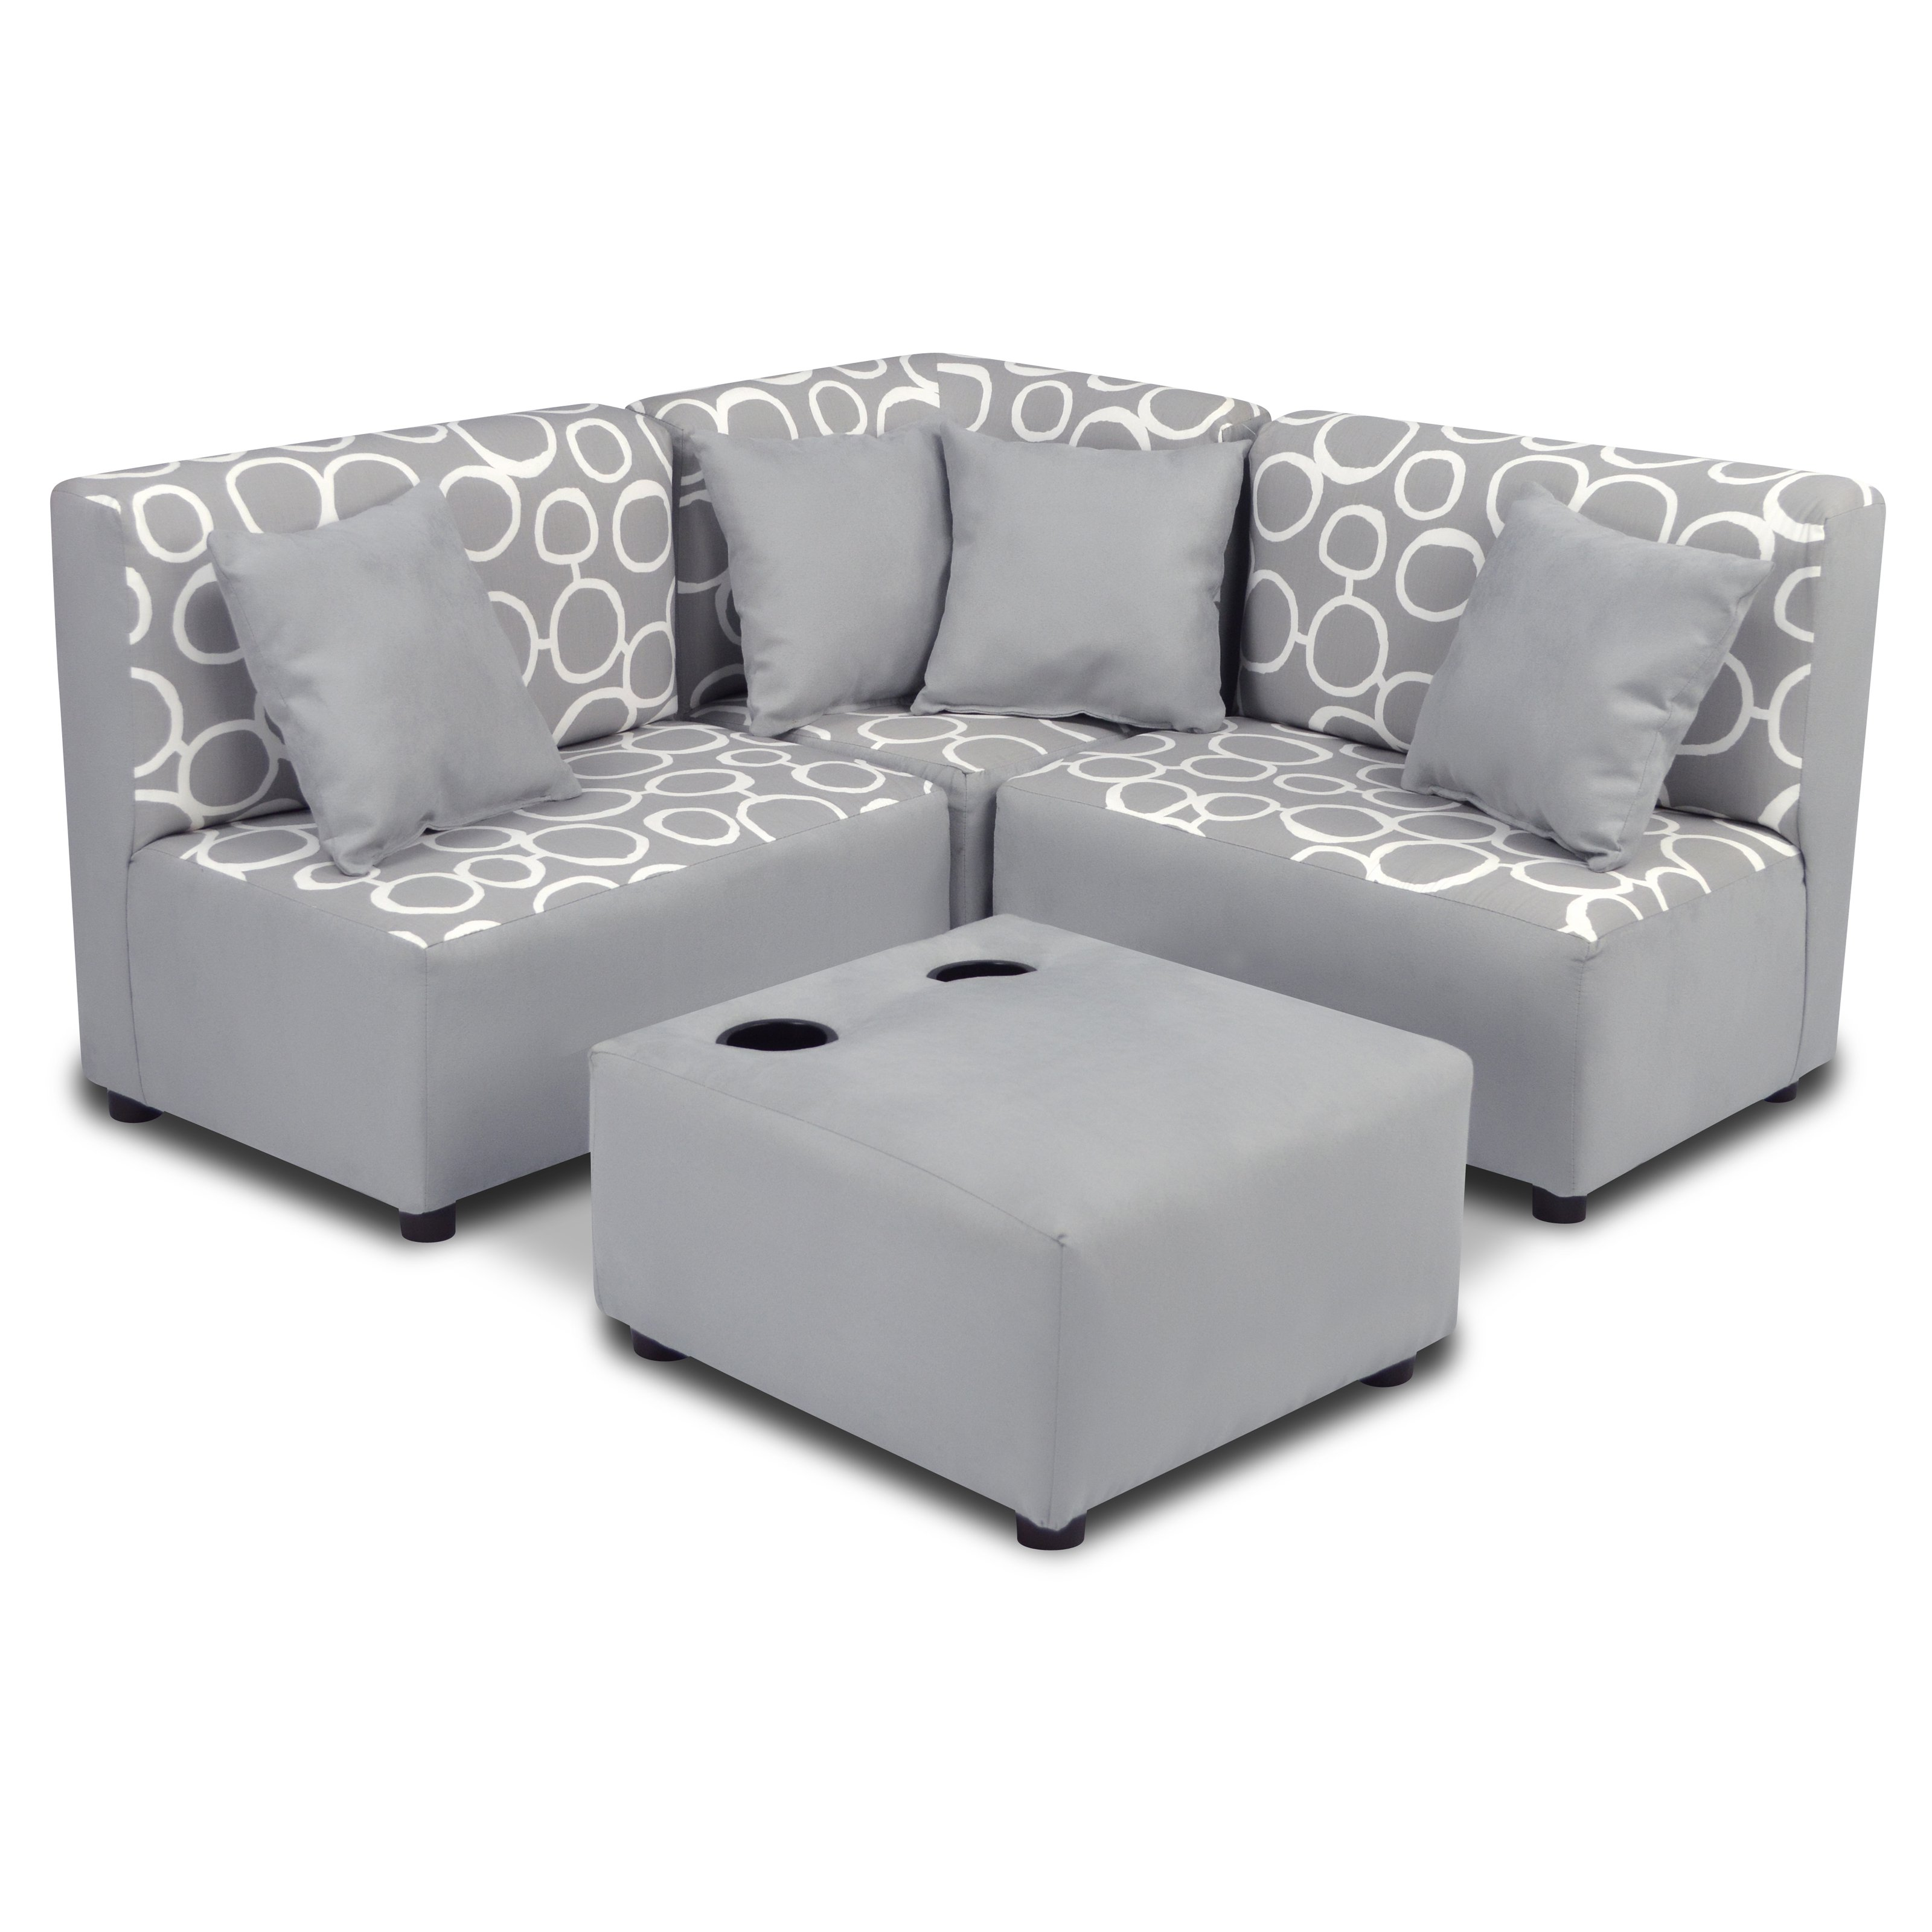 Kid s Sectional Set Freehand Storm Twill with Pebbles includes